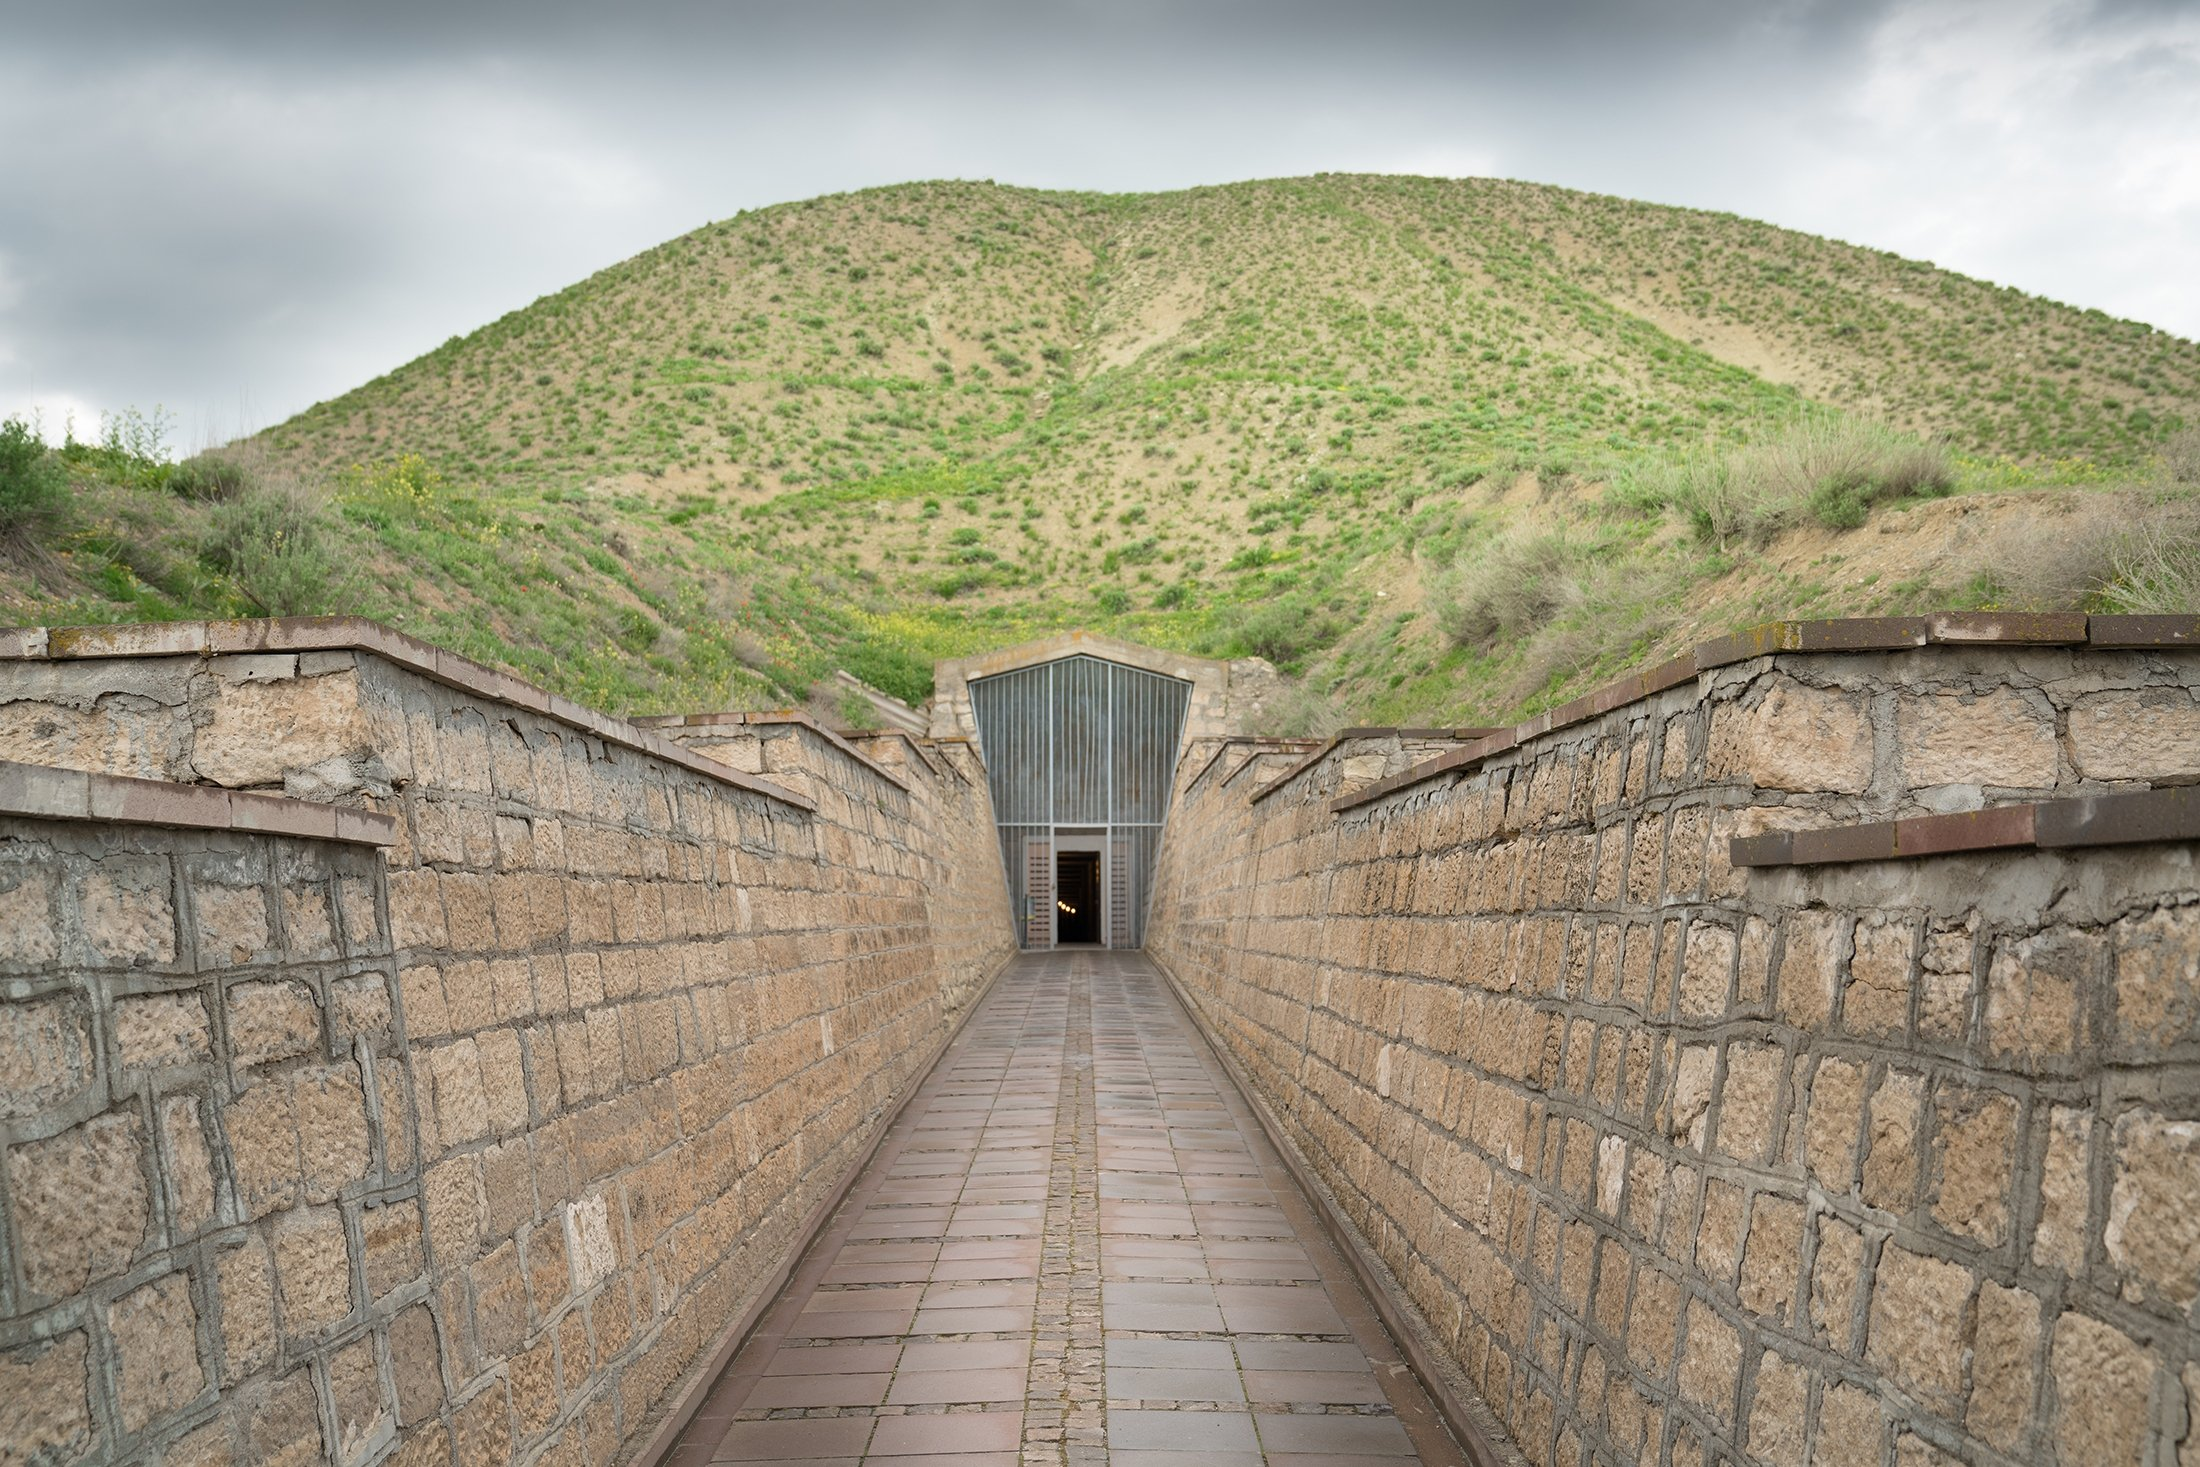 The tumulus and entrance to the tomb of King Midas of Phrygia in the ancient city of Gordion, Ankara, Turkey. (Shutterstock Photo)